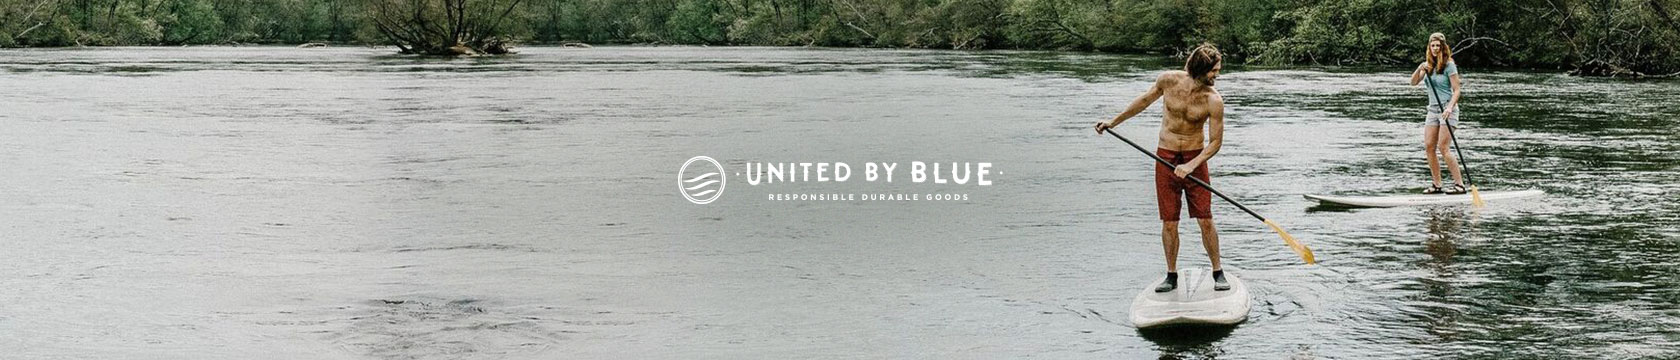 Two people on the water wearing United By Blue clothing.